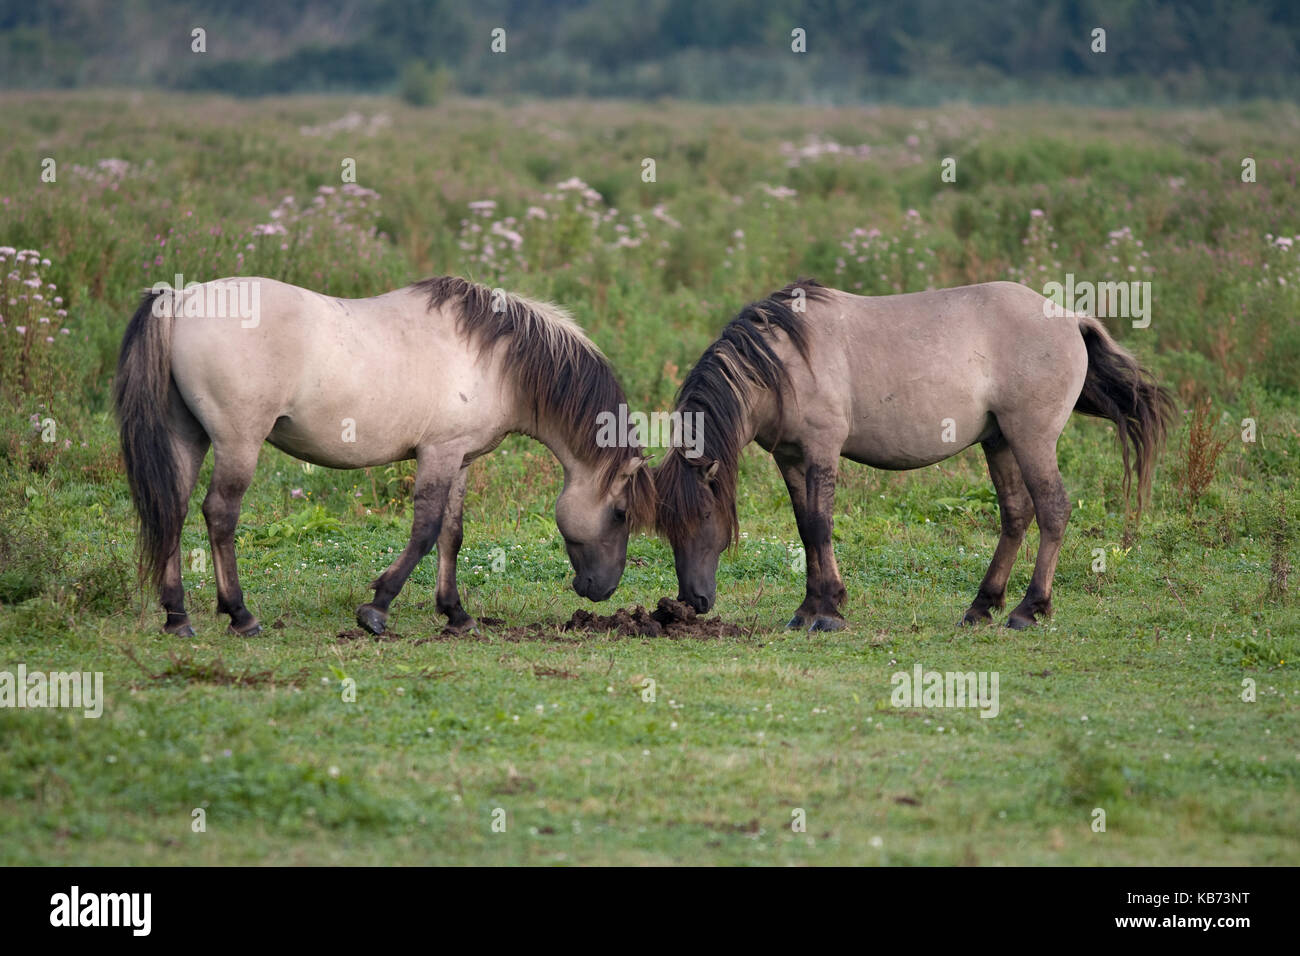 Wild Horse (Equus caballus) pair interacting over dung pile, Oostvaardersplassen Nature Reserve, The Netherlands, - Stock Image